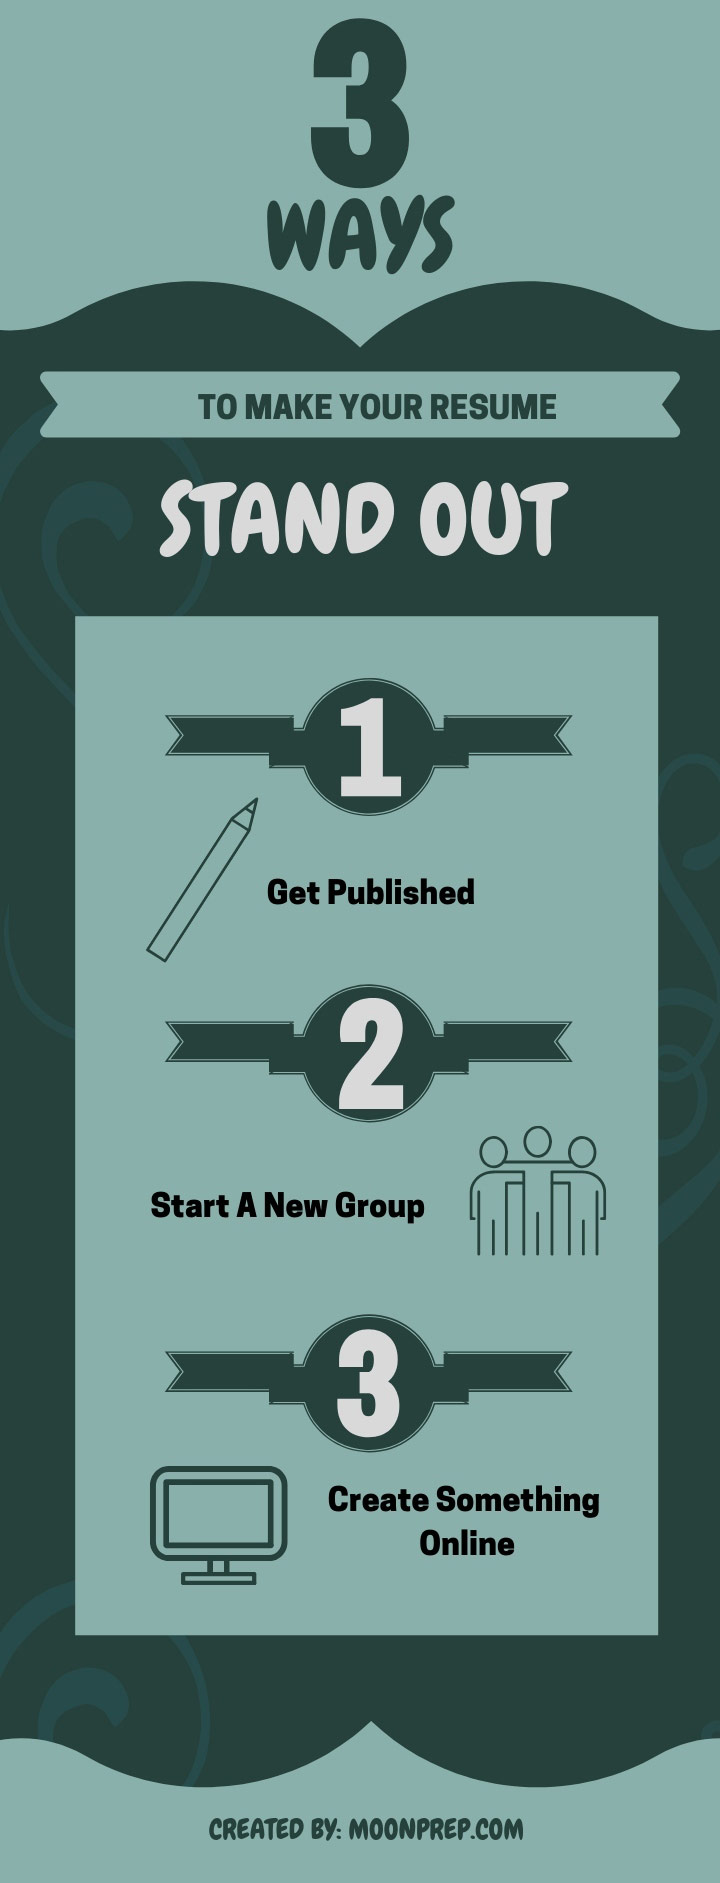 3 ways to stand out infographic